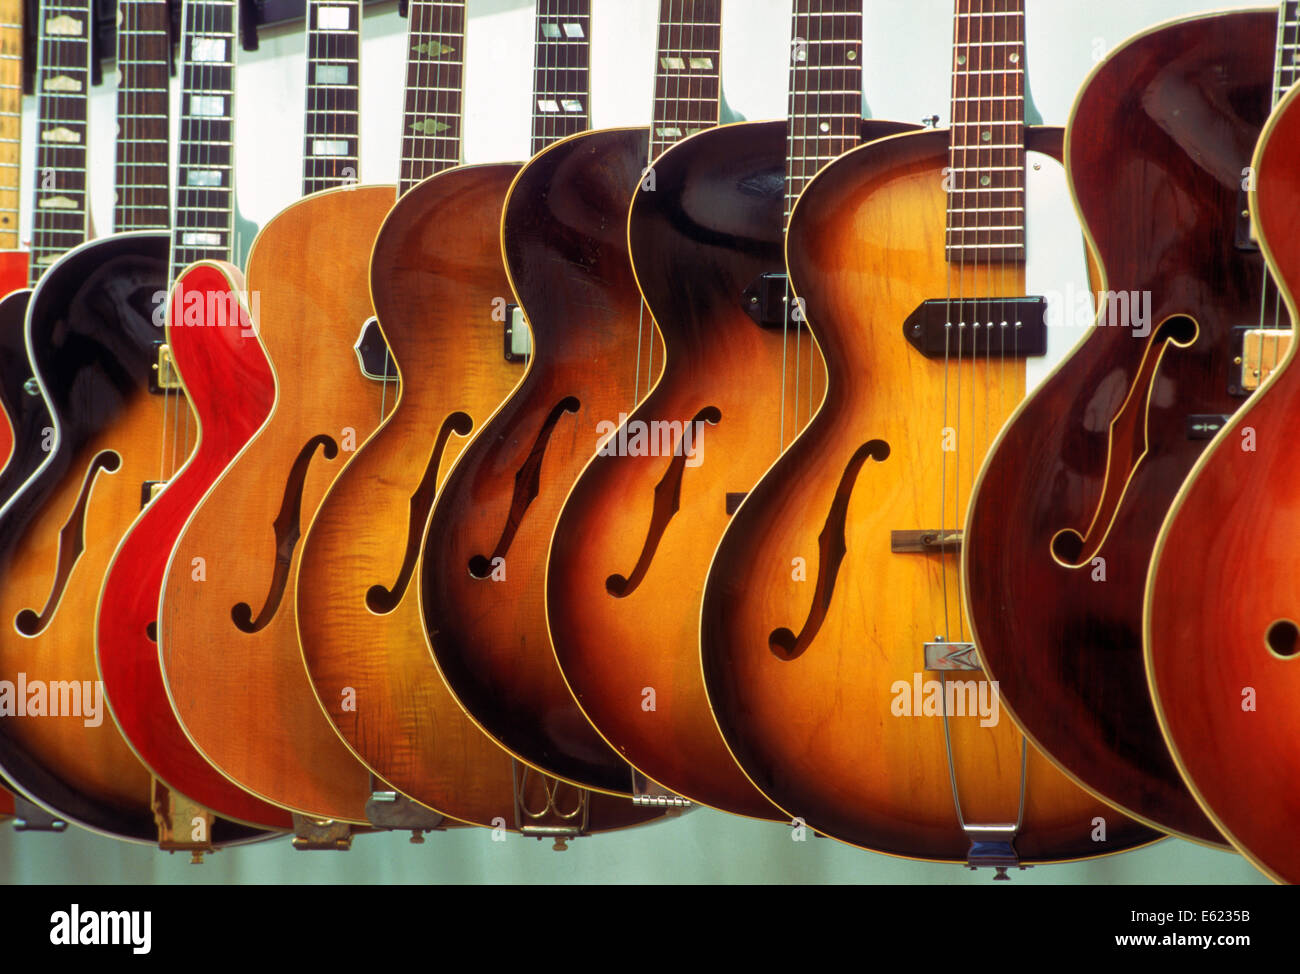 Made in America.  Grunn Guitars shop in Nashville Tennessee selling musical instruments - Stock Image